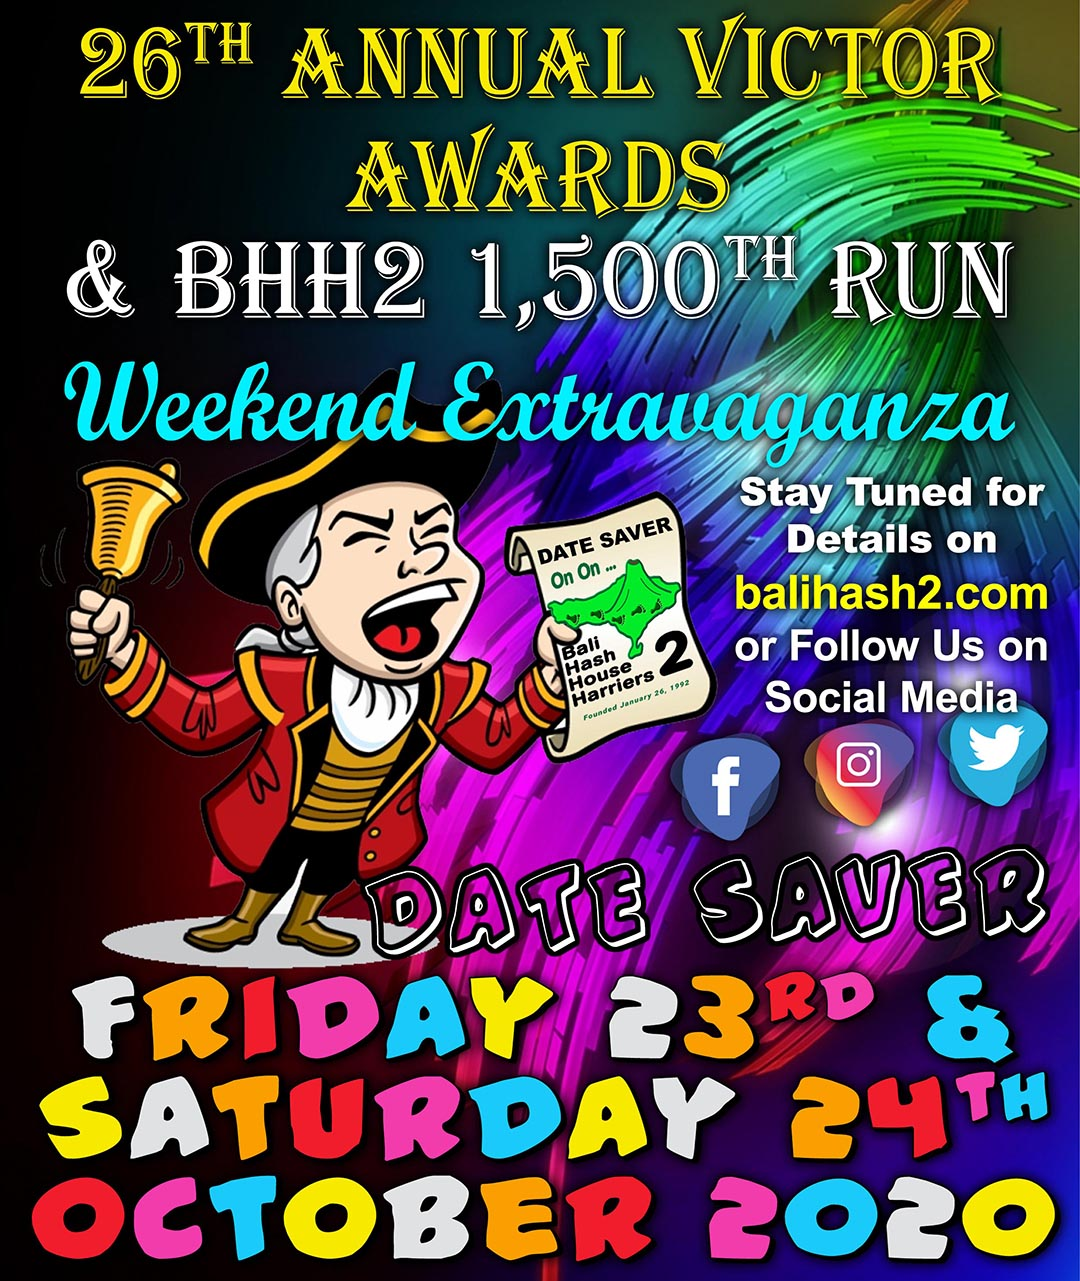 DATE SAVER 2020 Victor Awards 1500th Run Extravaganza